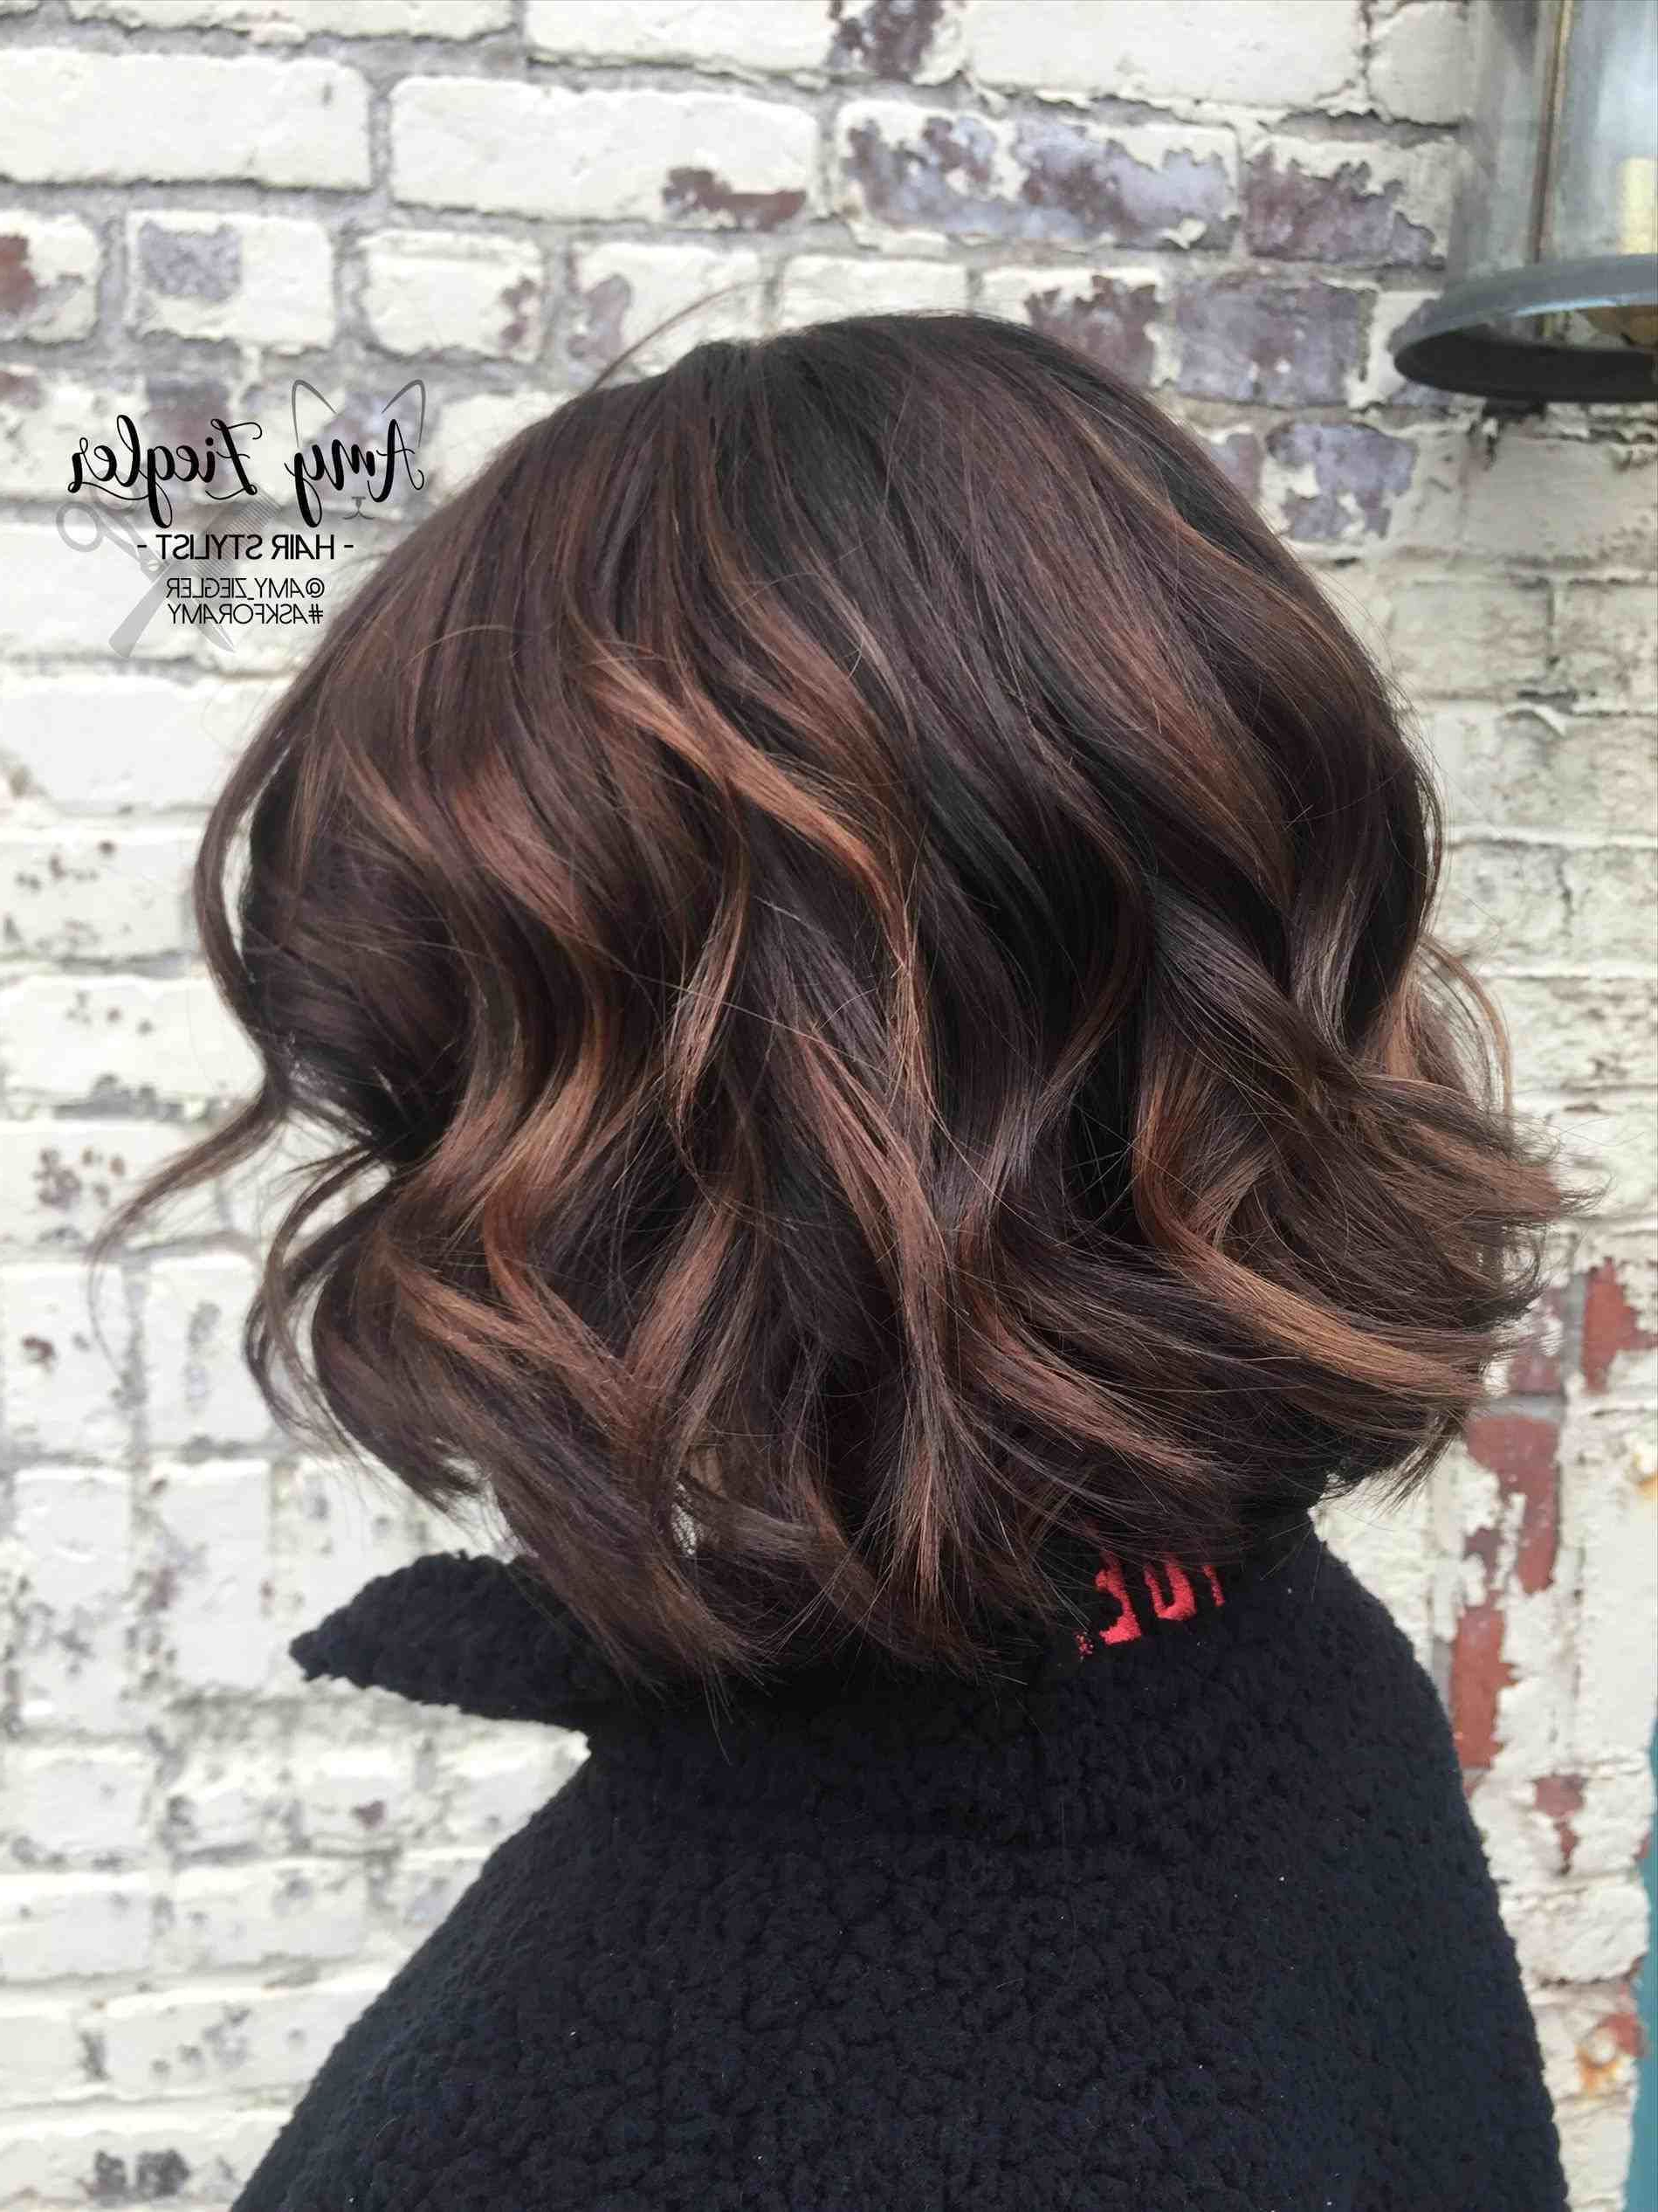 Pin On Hair Intended For Short Bob Hairstyles With Balayage Ombre (View 2 of 20)